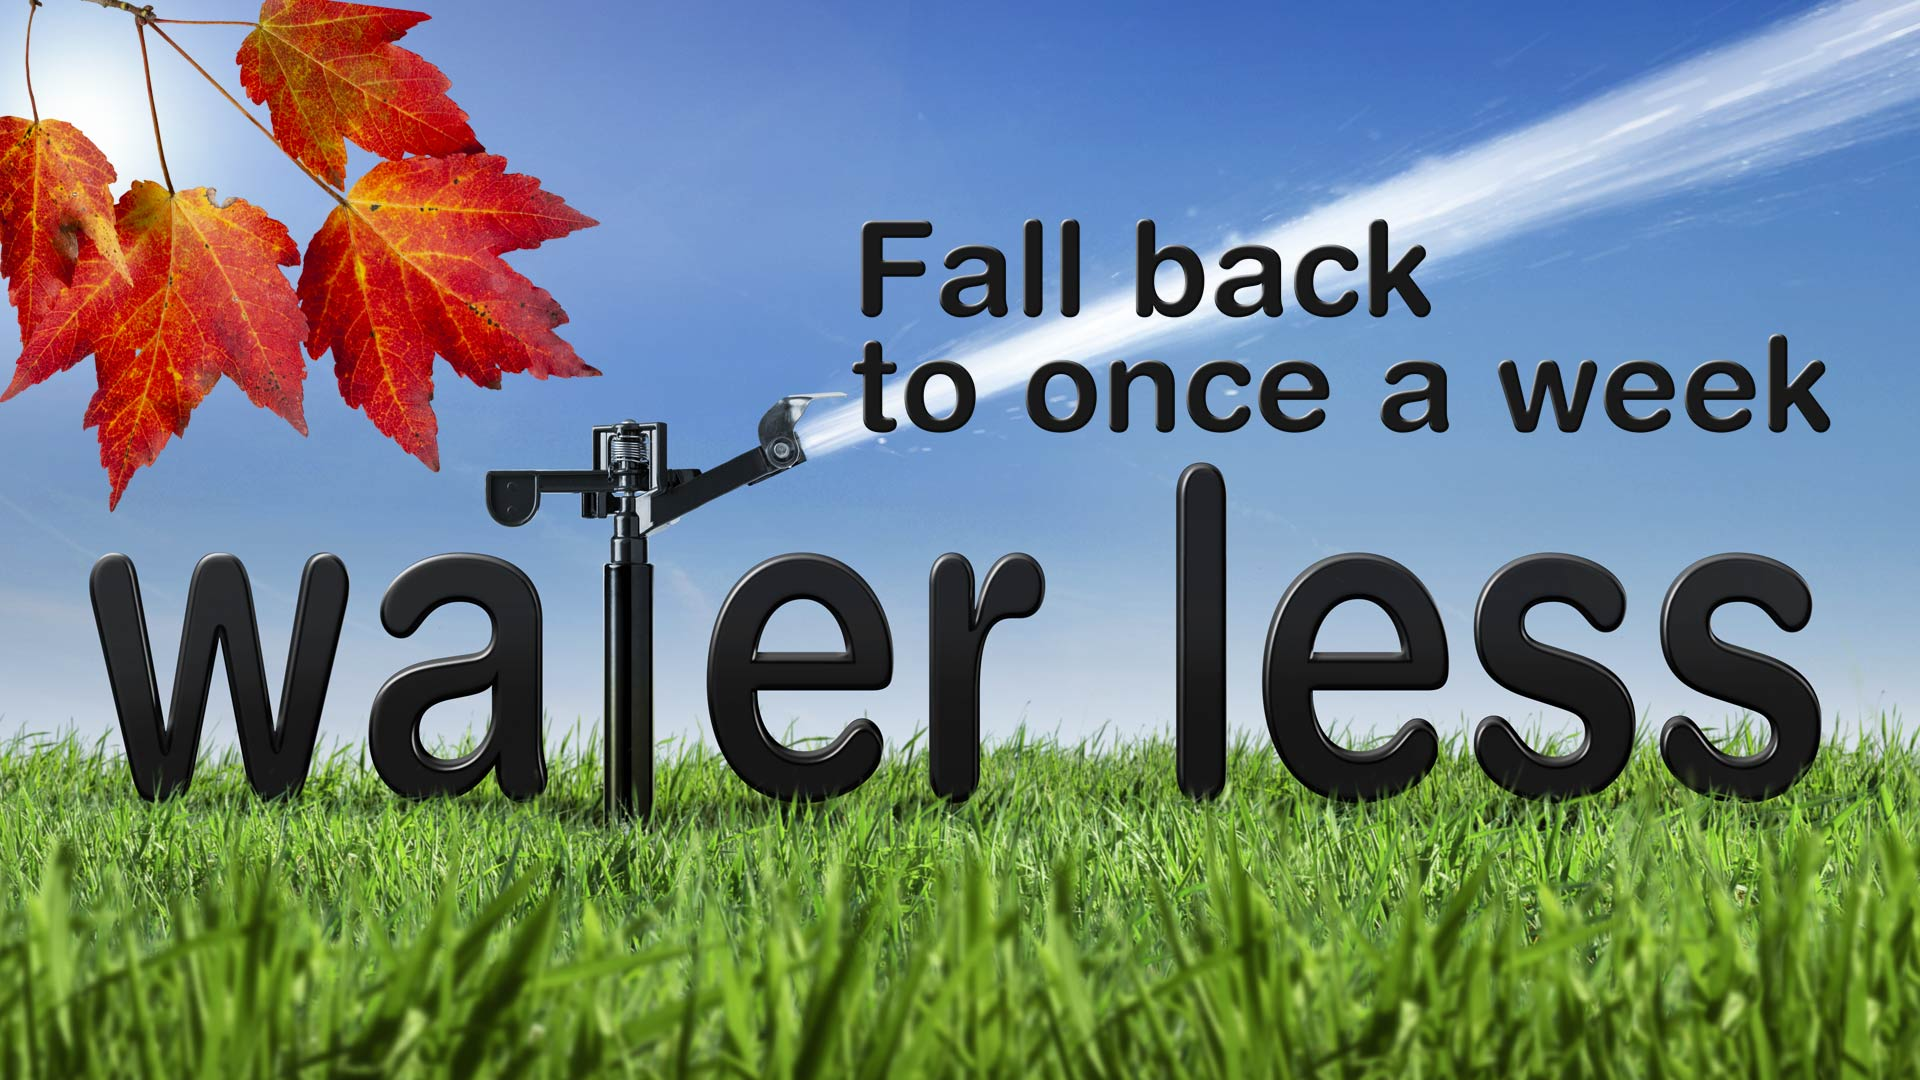 District's Fall Back campaign